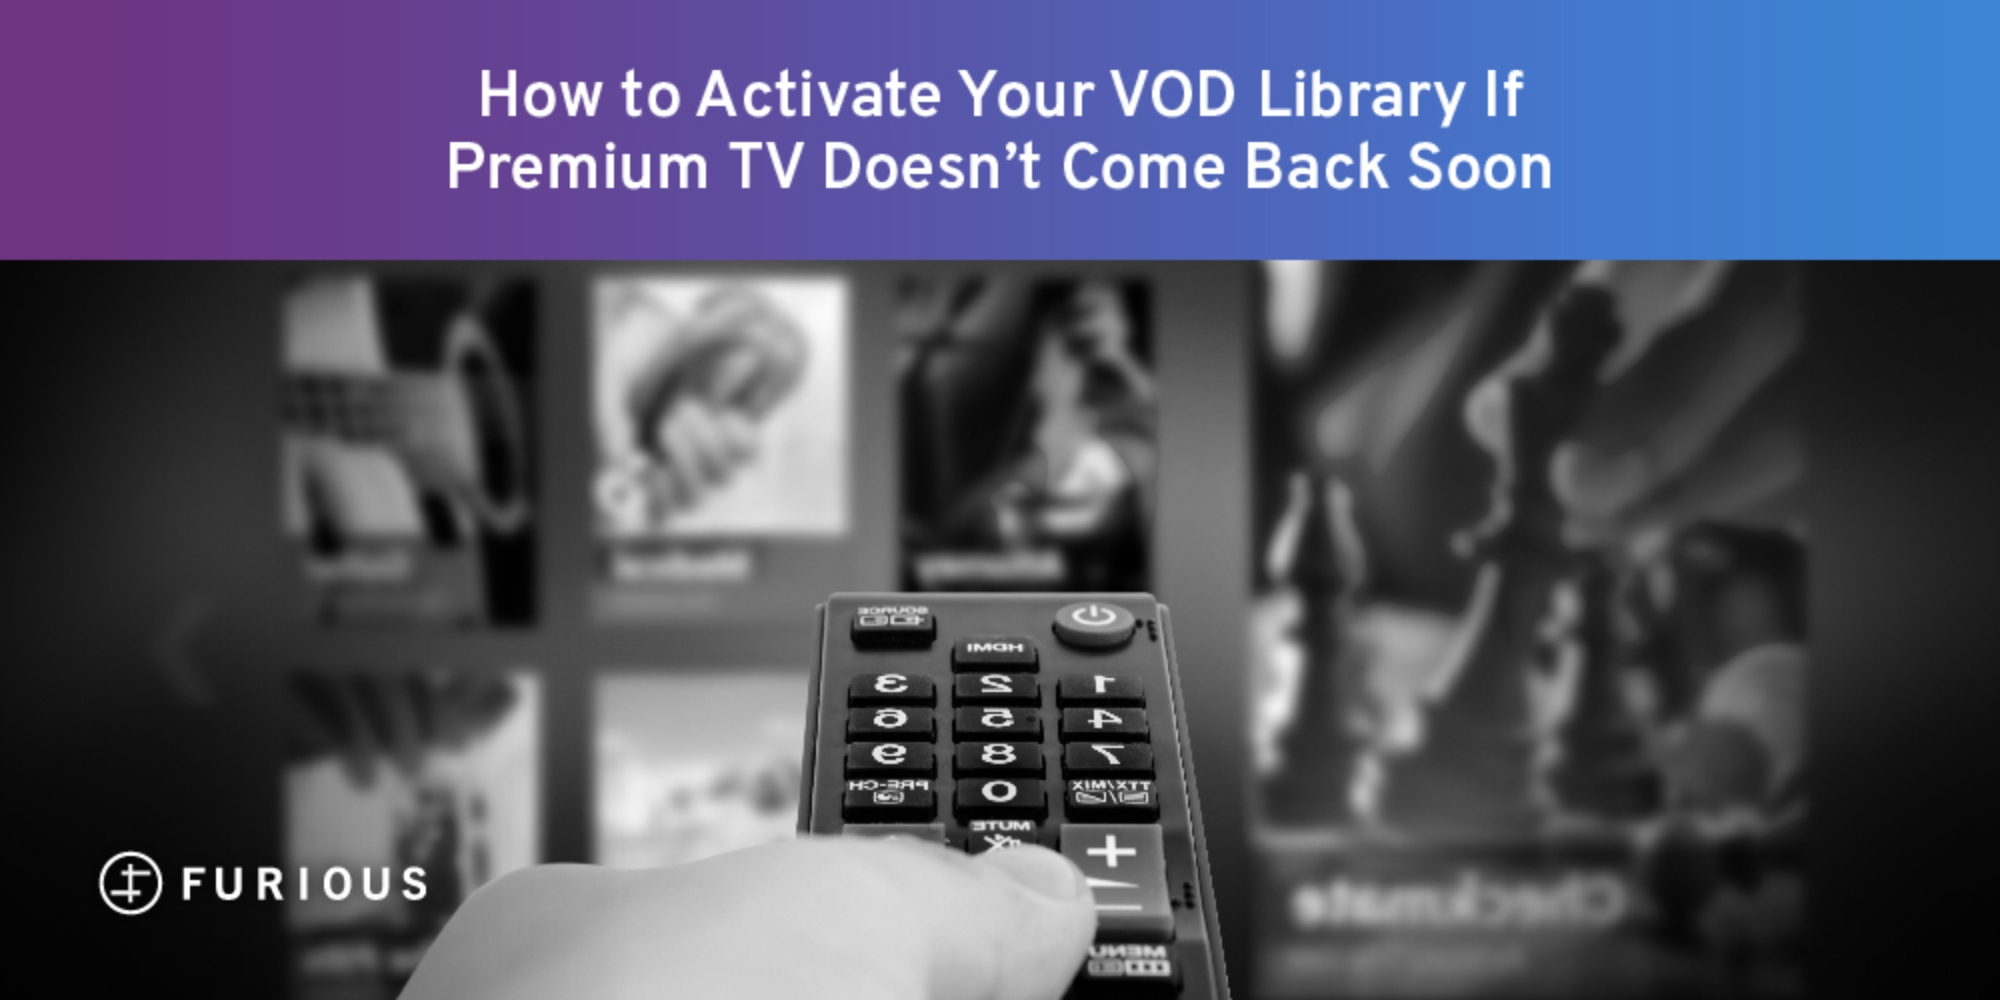 How to Activate Your VOD Library If Premium TV Doesn't Come Back Soon